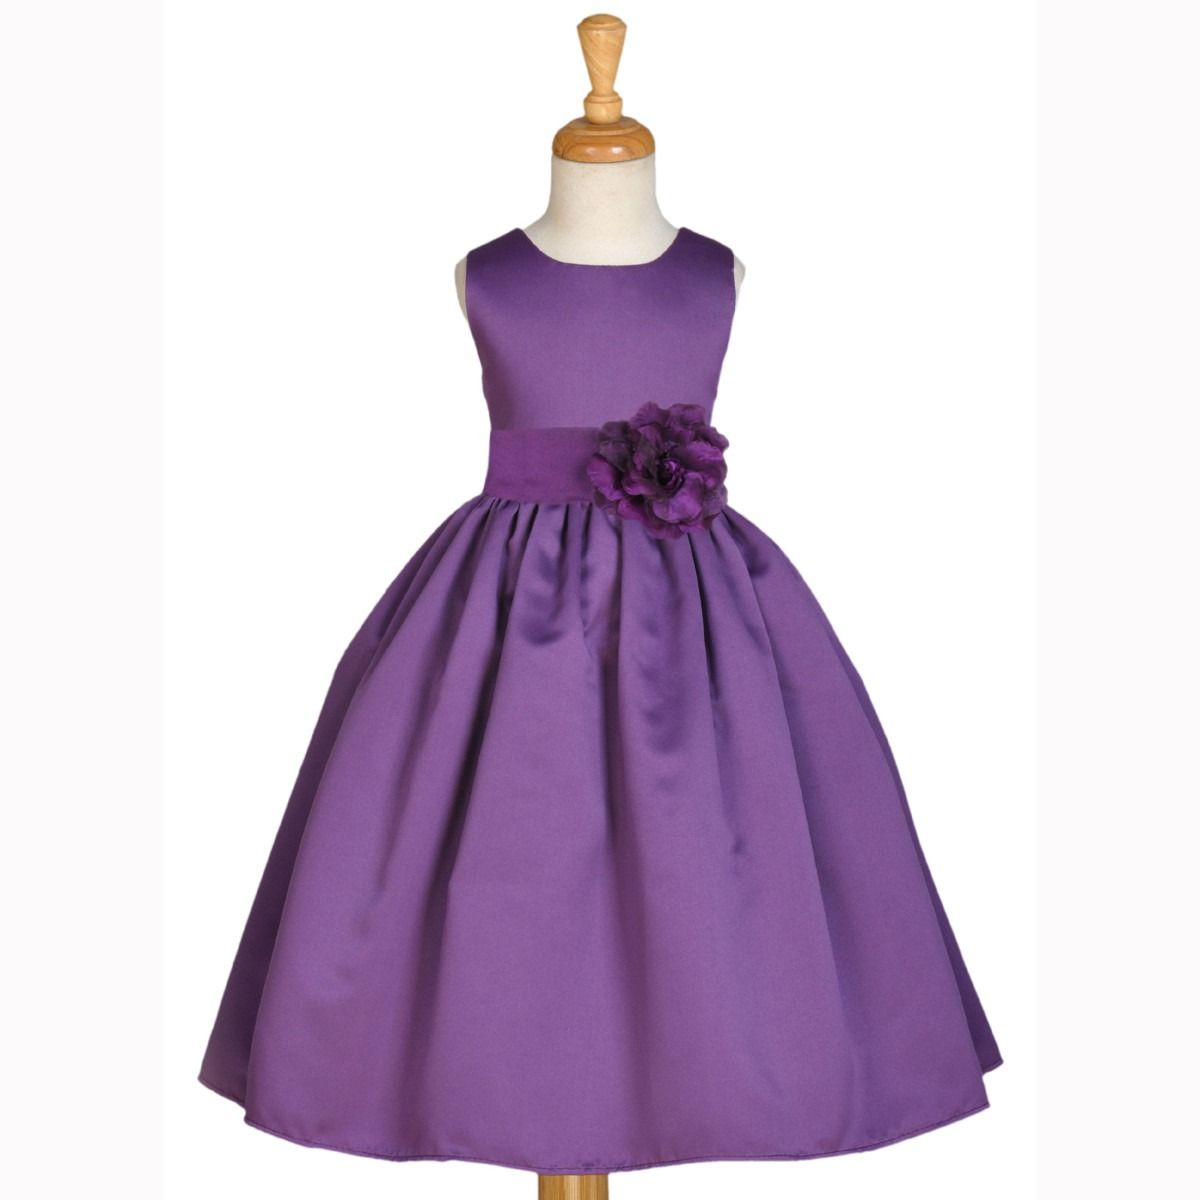 Breavley Diamond | Flower girl dresses, Girls dresses and Satin